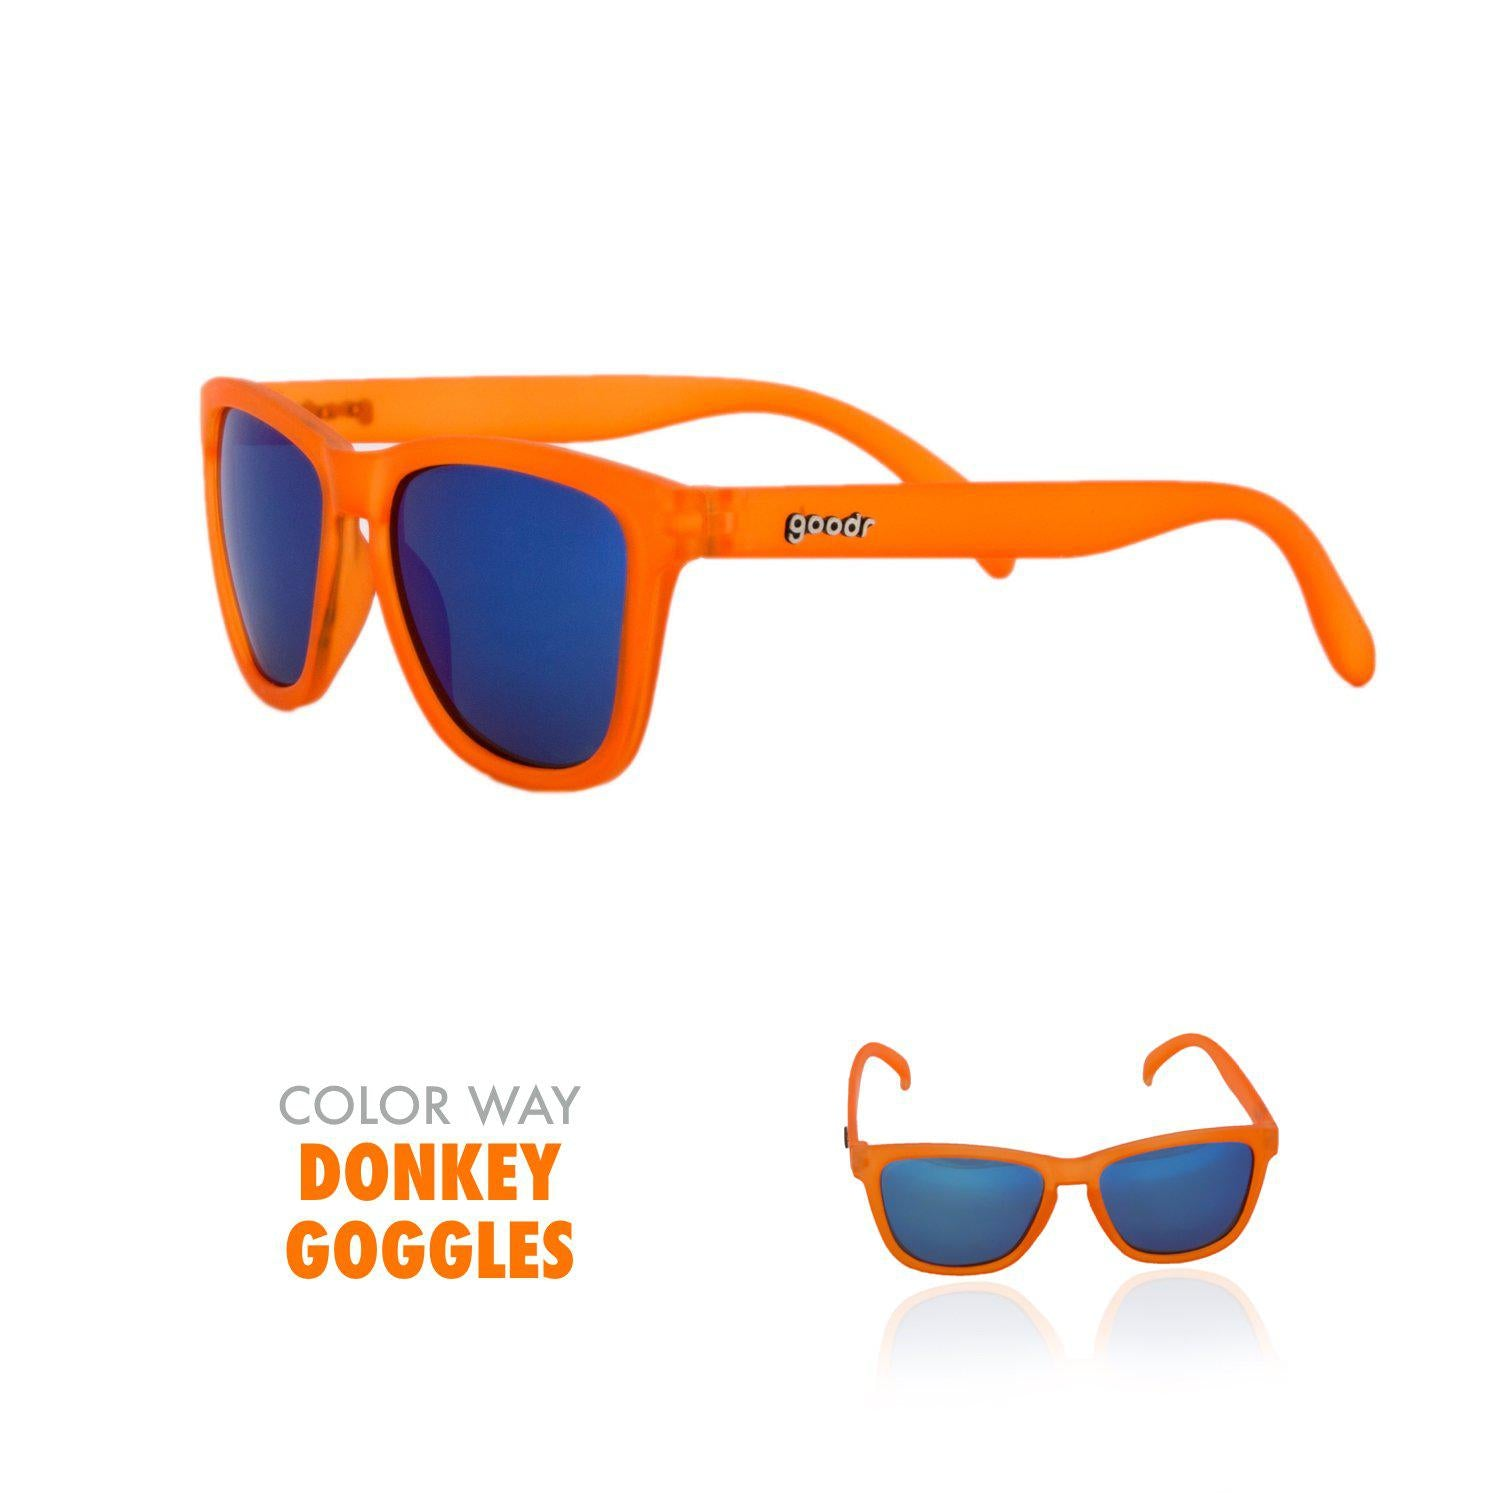 Goodr Running Sun Glasses-Clothing Accessories-Goodr-Donkey Goggles-2 Foot Adventures